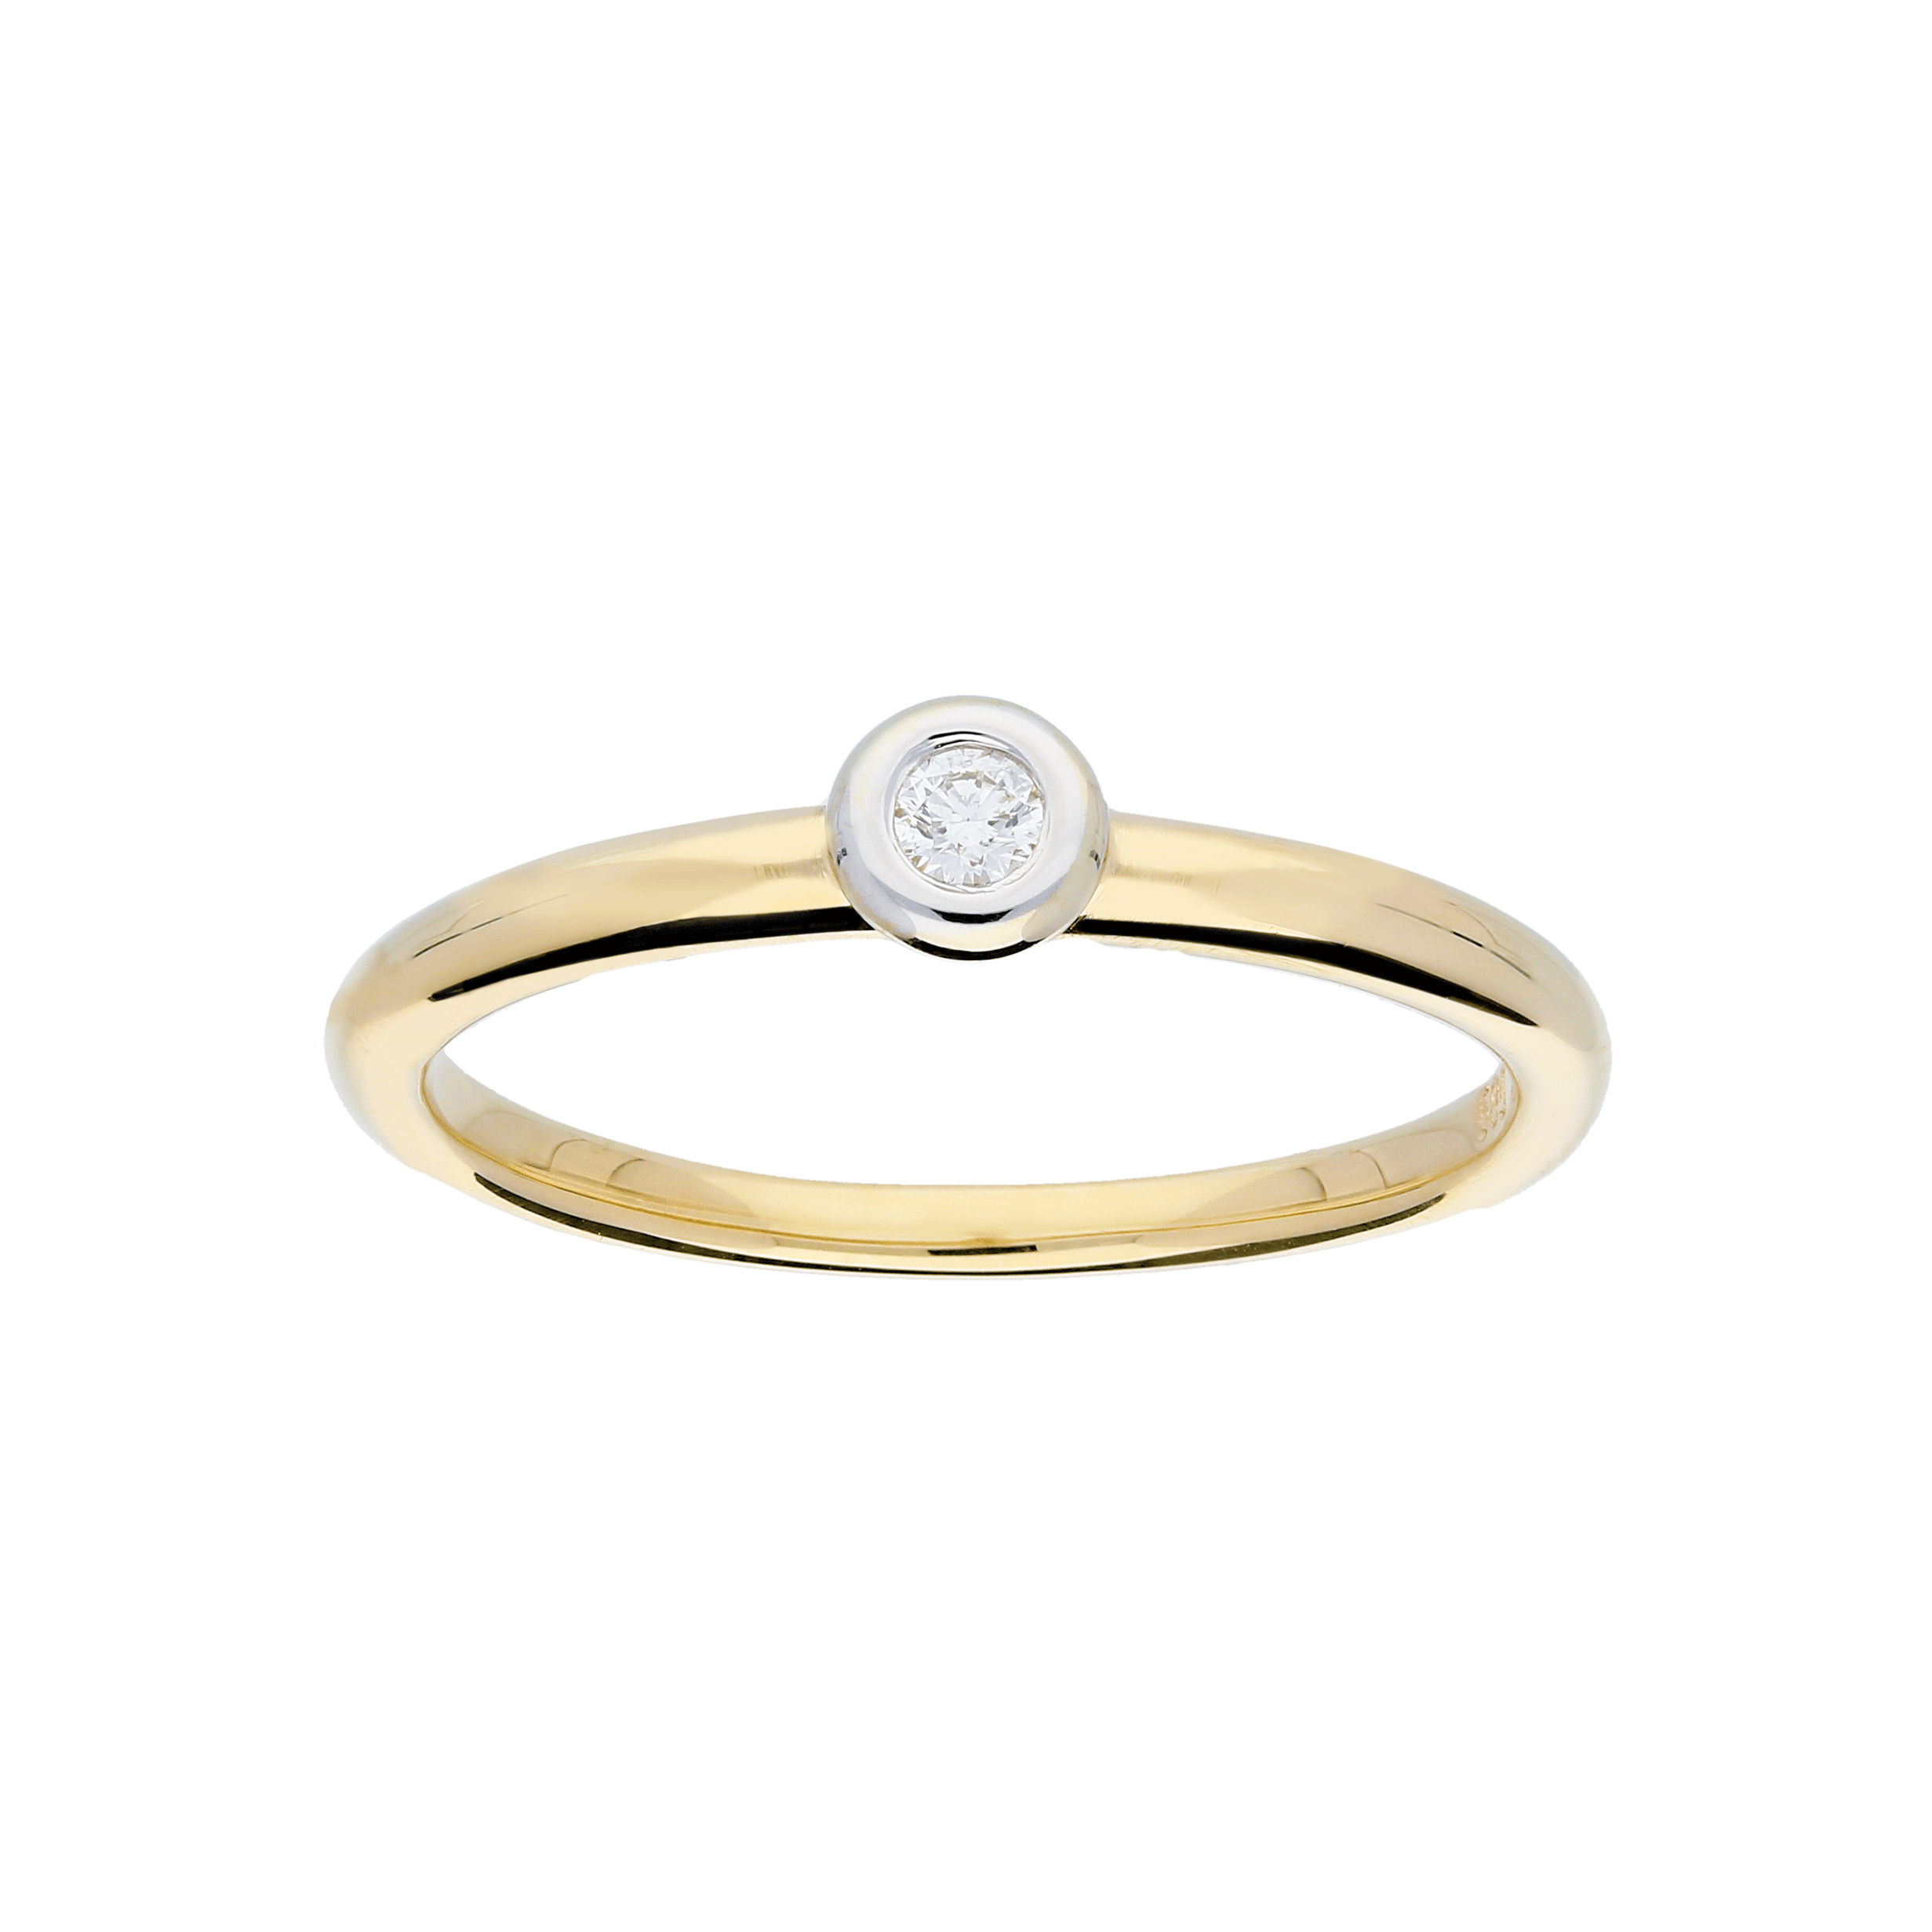 Glow Gouden Ring Bicolor Mat Glanzend Diamant 1 0.04ct G si 214.5201.52